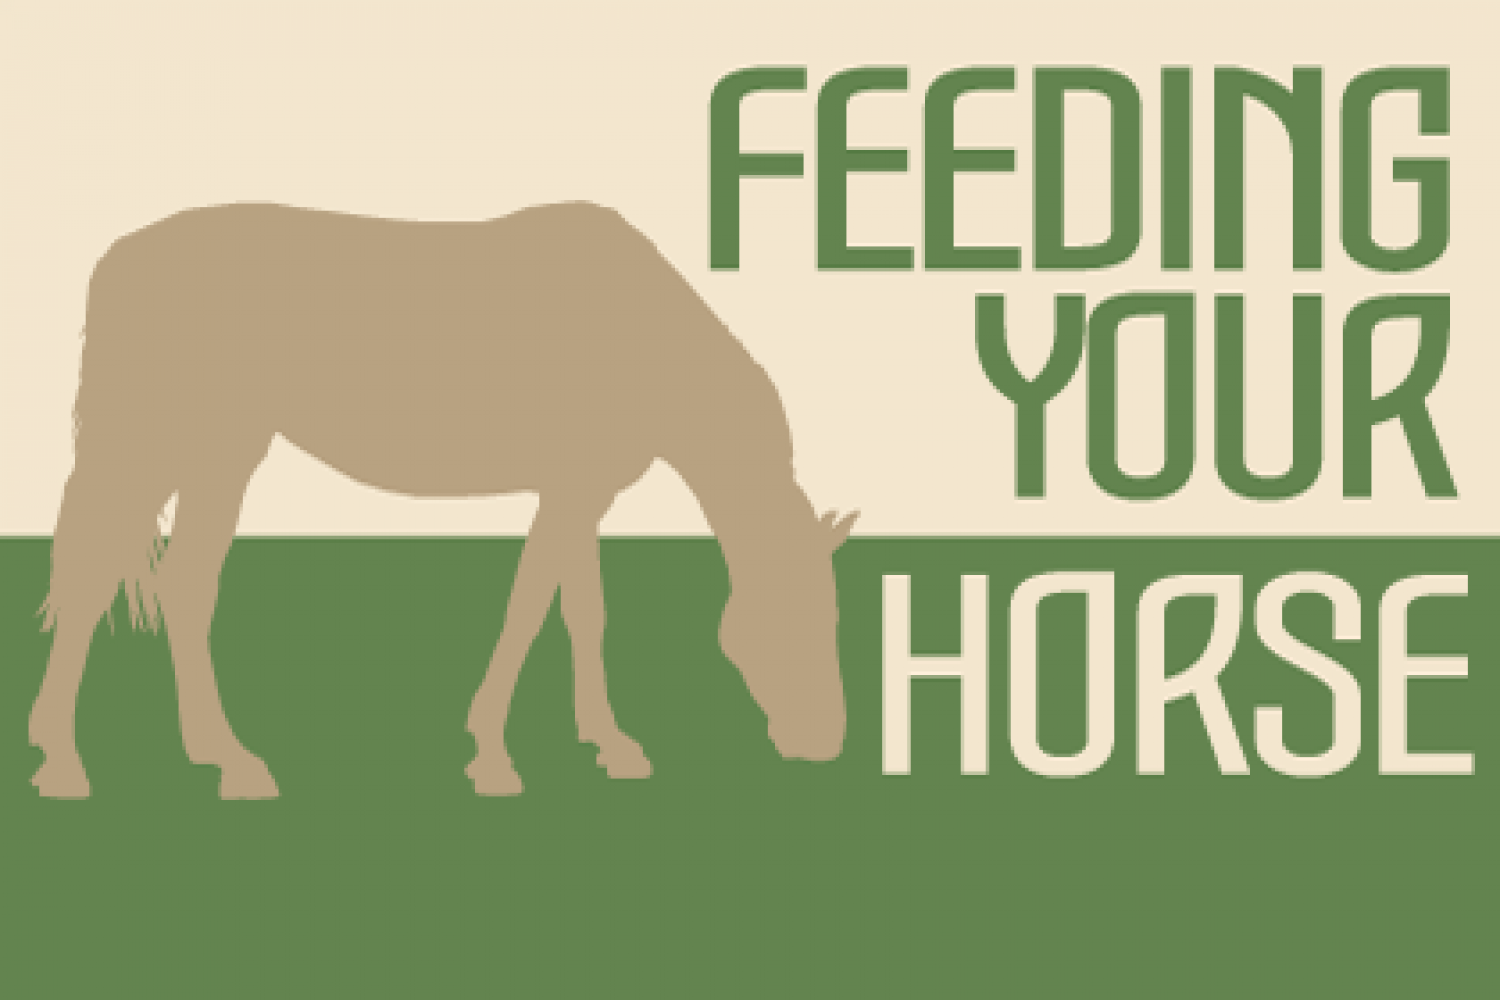 Feeding Your Horse  Infographic